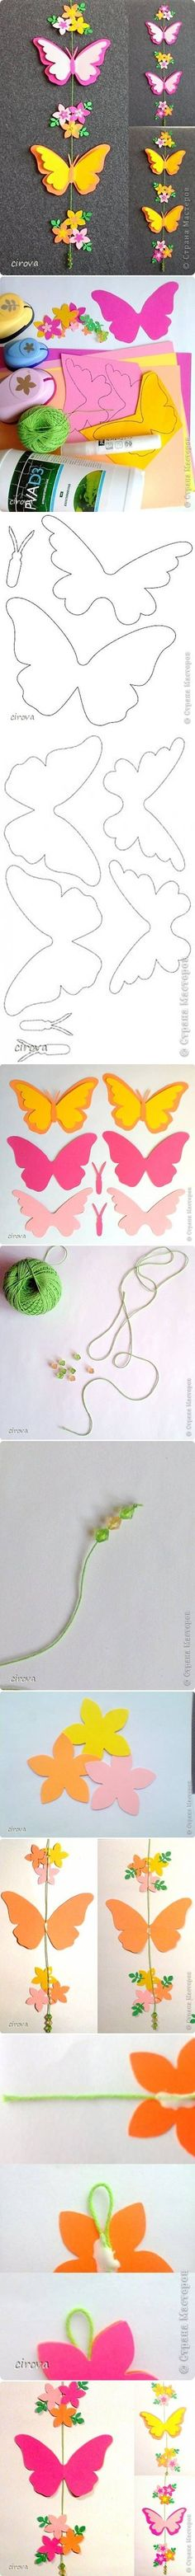 DIY Paper Butterfly Mobile DIY Paper Butterfly Mobile  -- Could be done in FELT